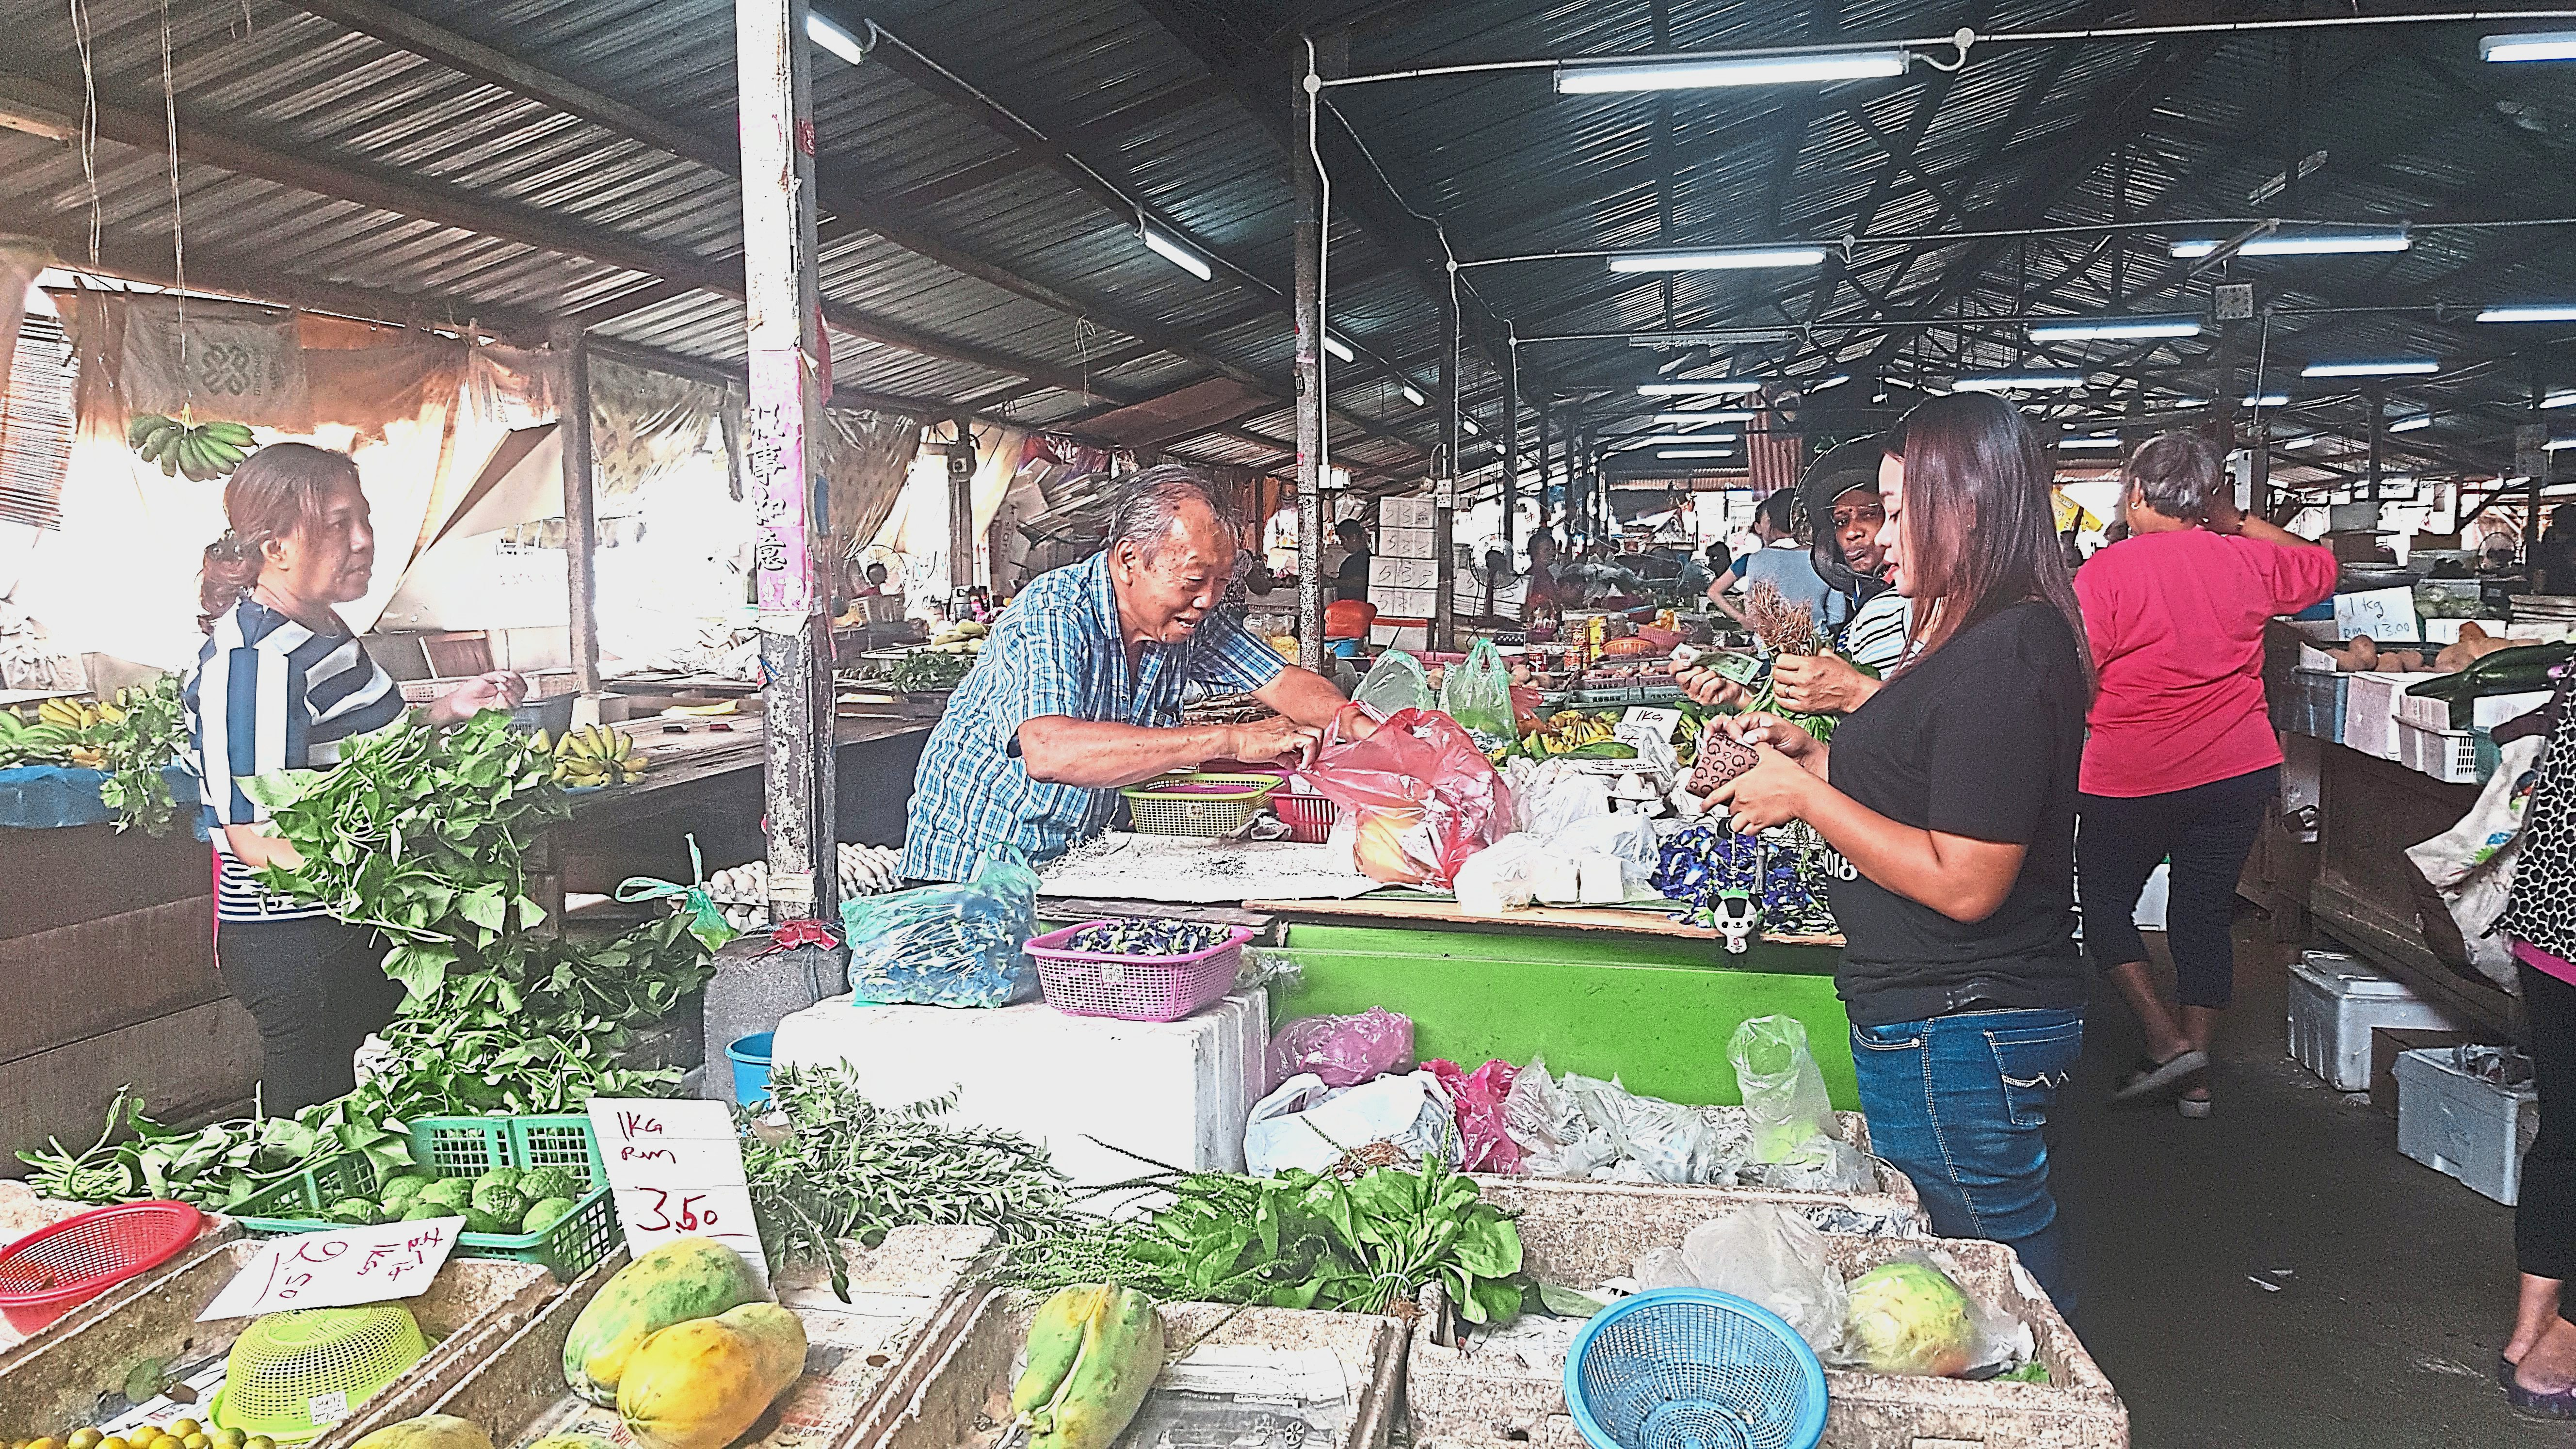 Kampung Baru Simeeu2019s wet market is popular with residents from nearby areas.